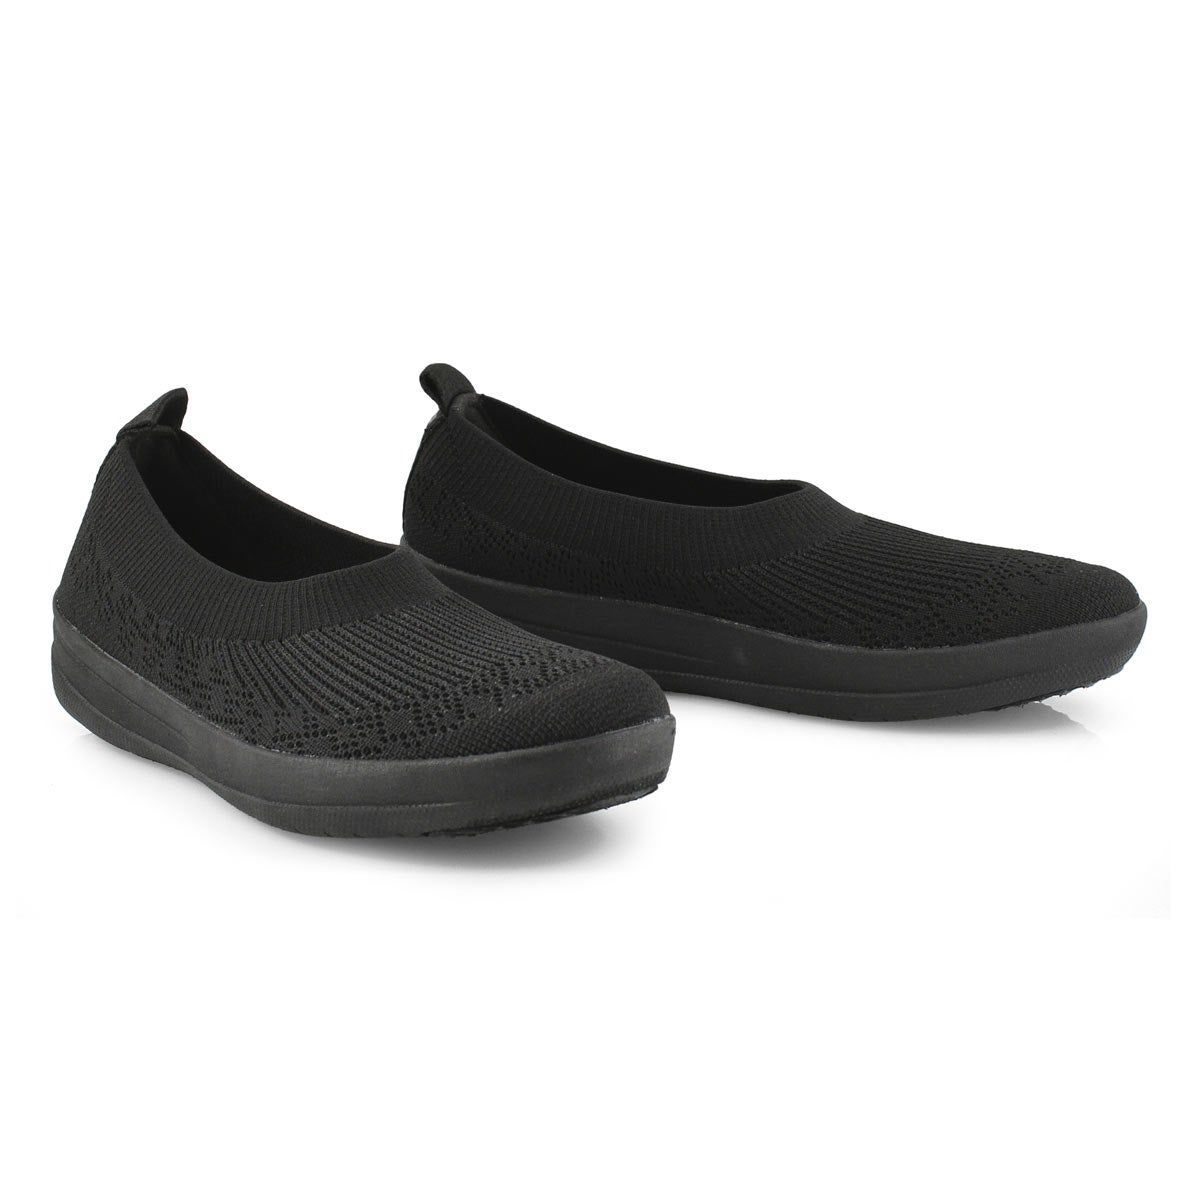 Lds Uberknit Ballerina blk slip on shoe